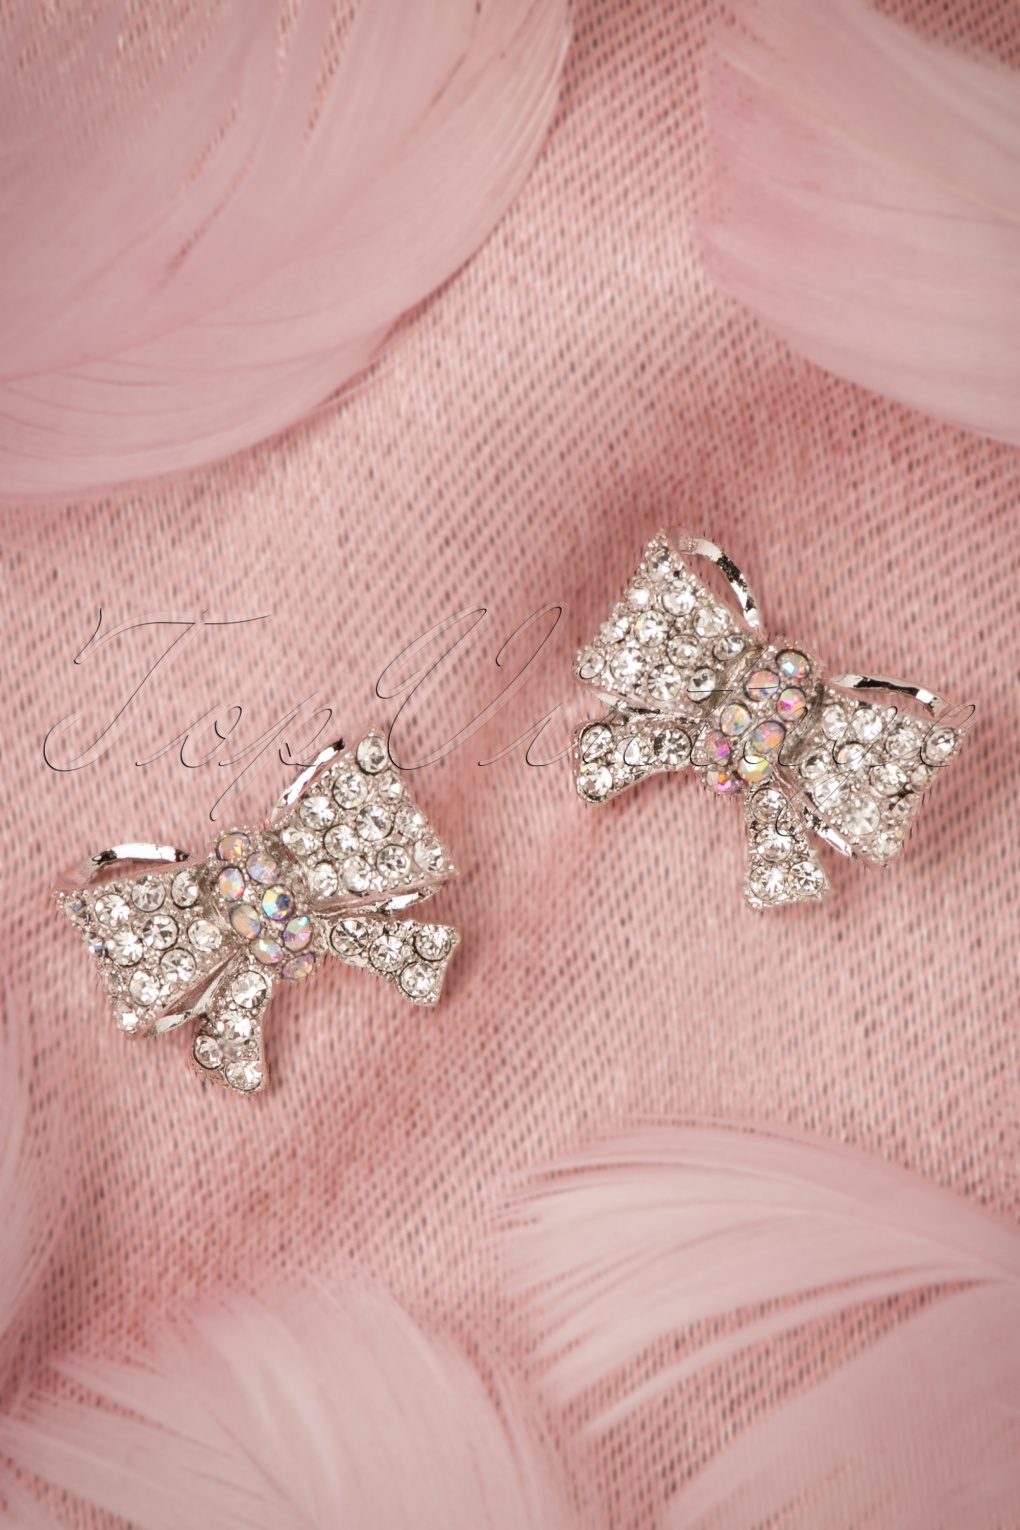 New 1940s Costume Jewelry: Necklaces, Earrings, Pins 40s Sparkly Bow Earrings in Silver £11.04 AT vintagedancer.com